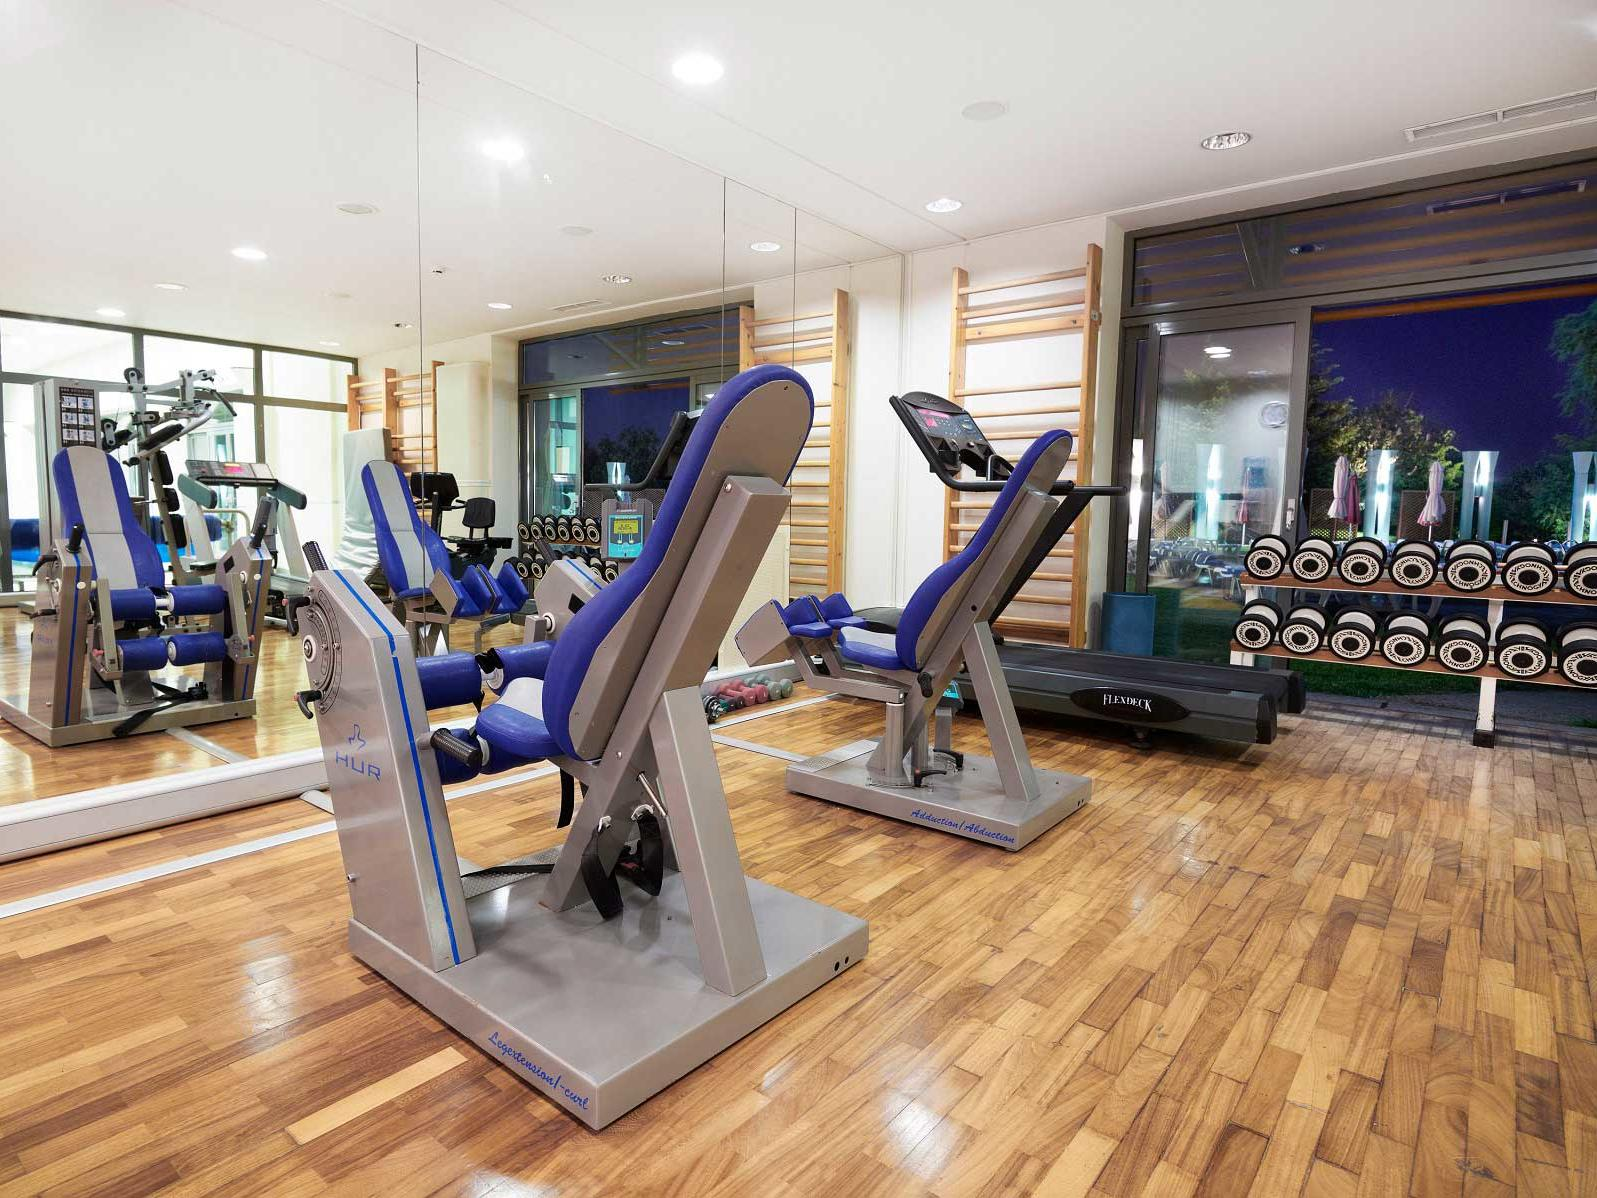 Fitness Room at Ana Hotels Europa Eforie Nord